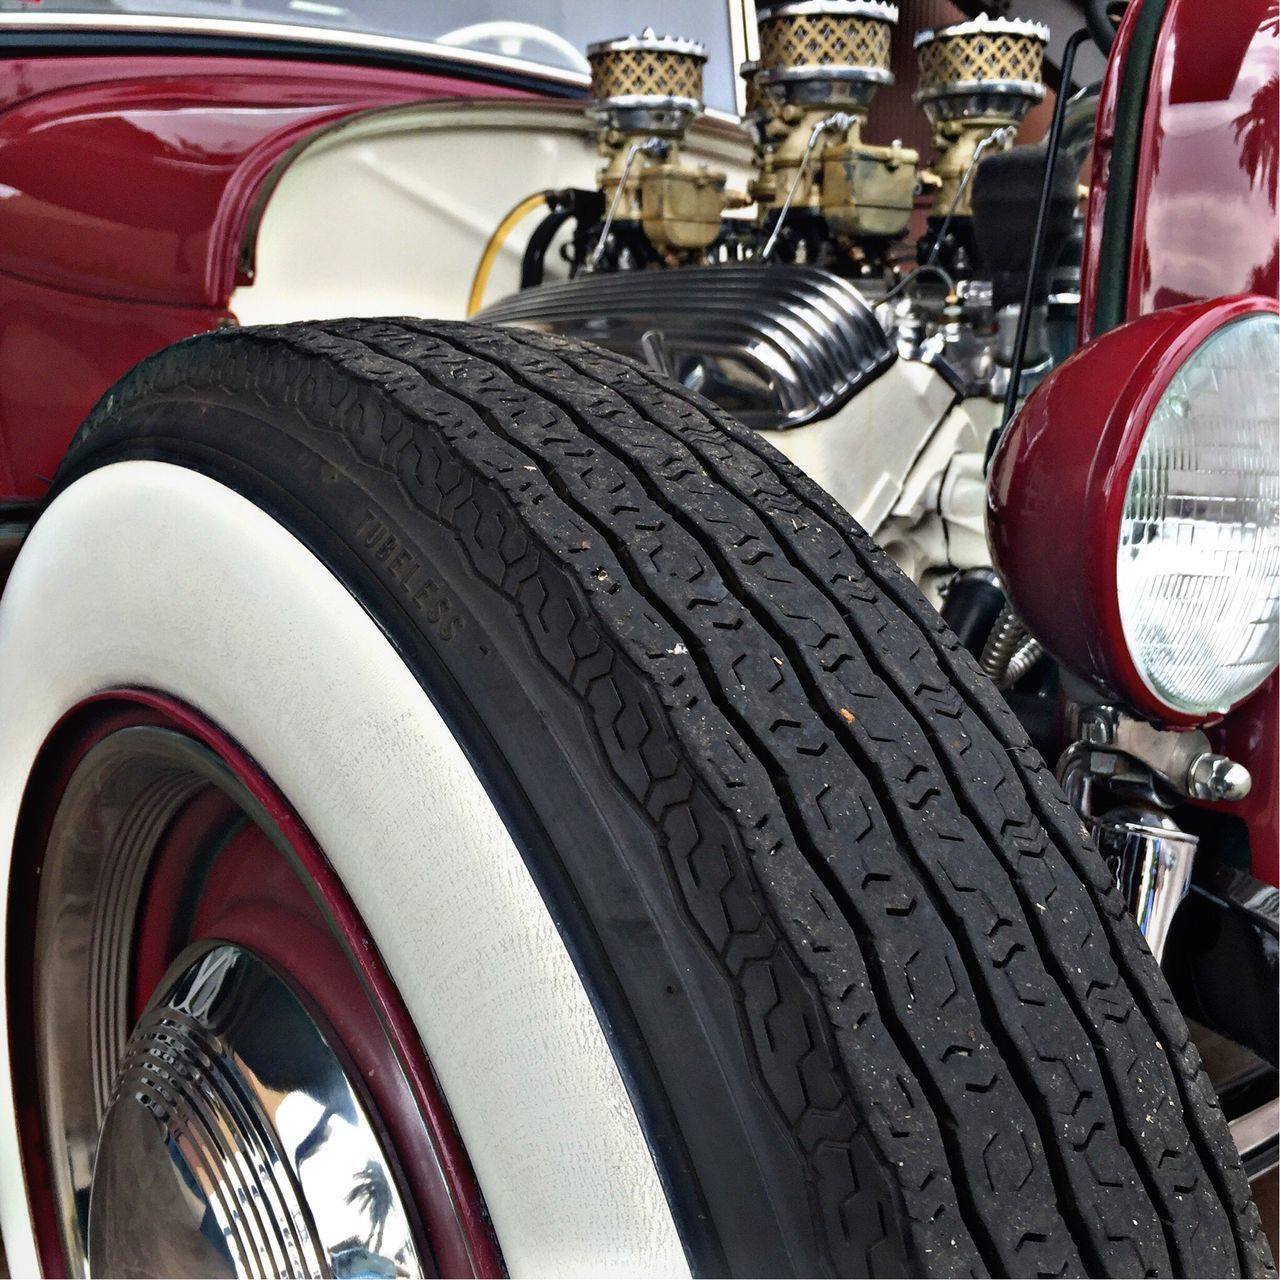 Whitewall Whitewalls  Engine Motor Kustomkuluture Vintage Cars Custom Cars Kustom Cars Hot Rod Hotrodcar HotRod Vintage Car Classic Car Hot Rod Classic Vintagecar Classic Cars Classiccar Cars Car Classic Car Show Custom Custom Cars, Hot Rods, Car Show Custom Car Customcar